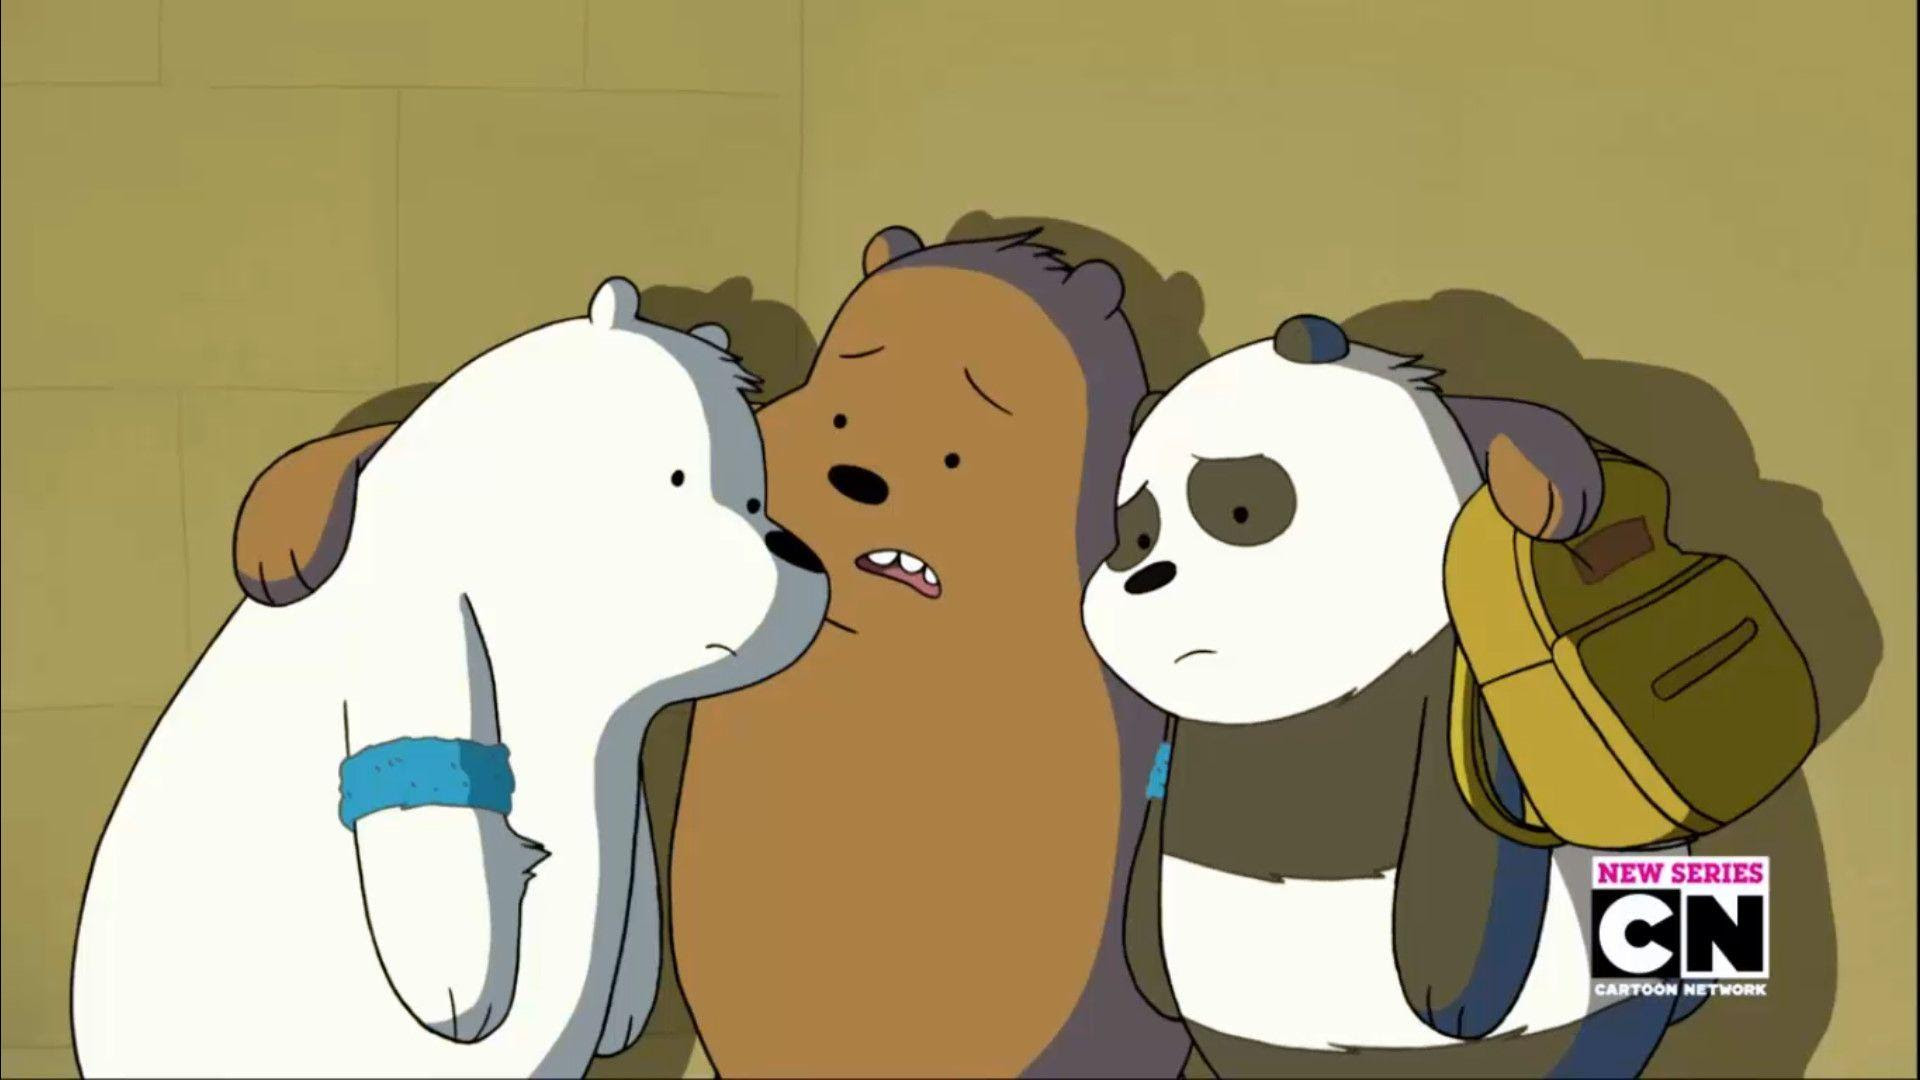 We Bare Bears Wallpapers - Wallpaper Cave